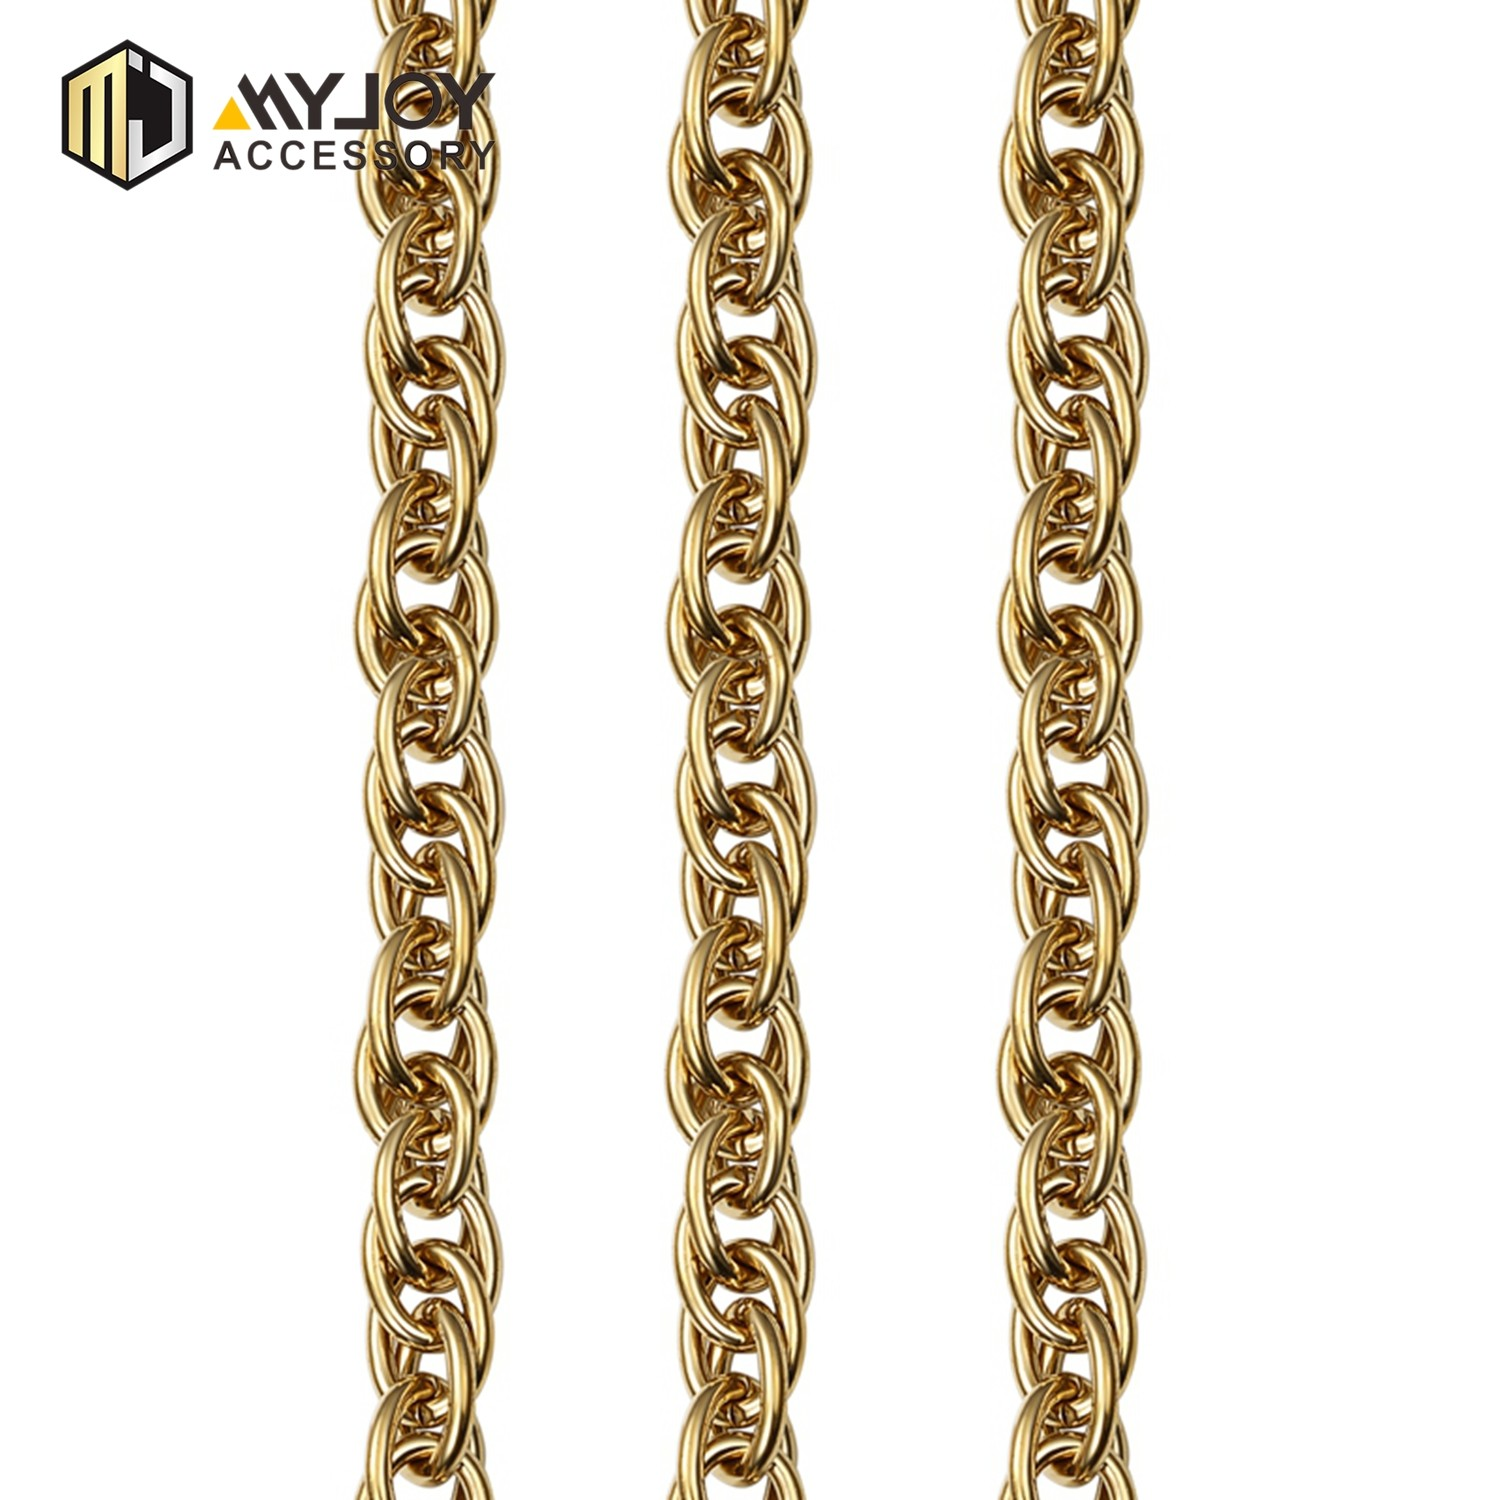 MYJOY vogue handbag strap chain for sale for bags-2